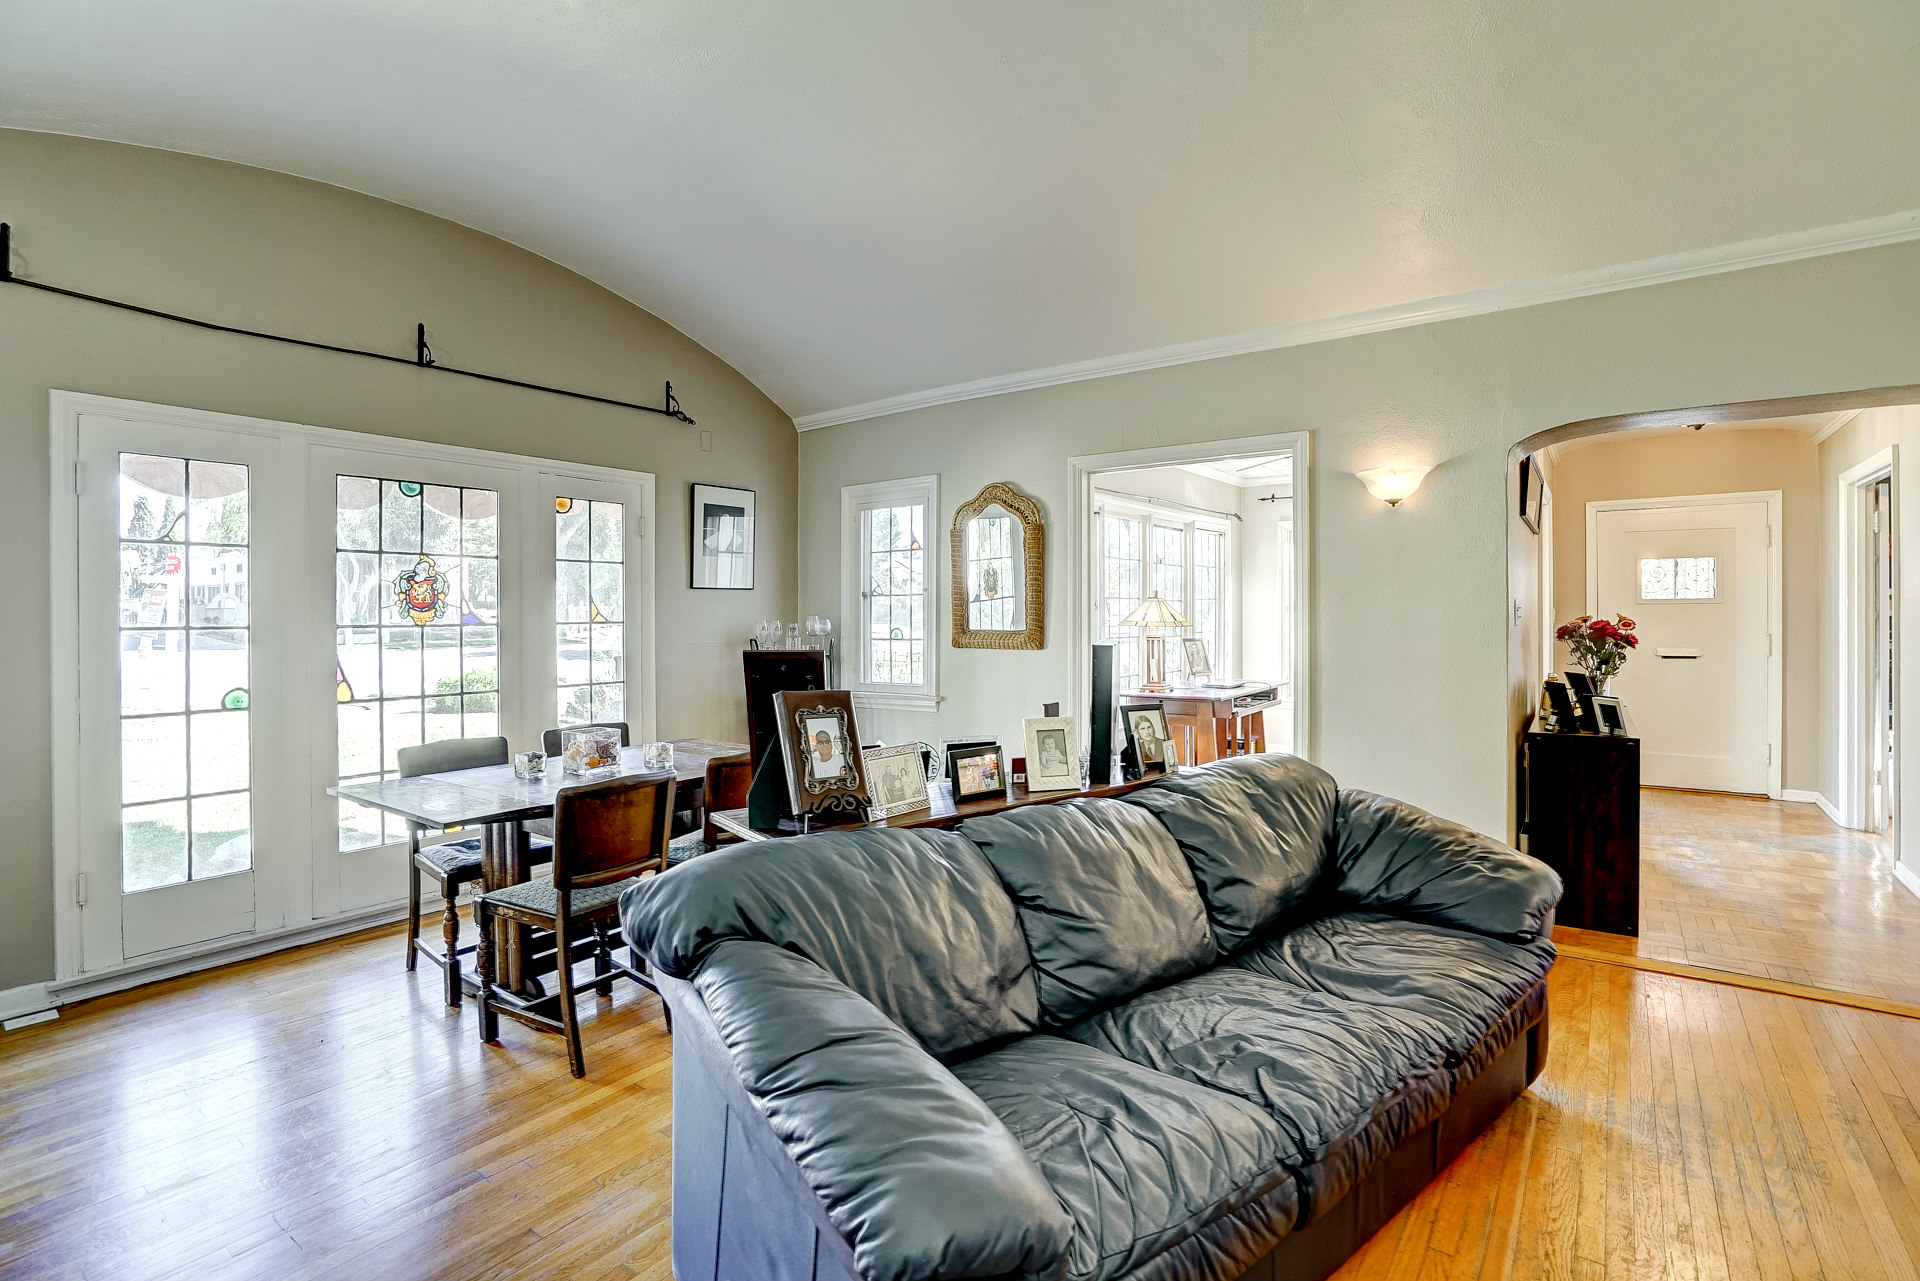 Alternate view of living room into entry hallway and front parlor.